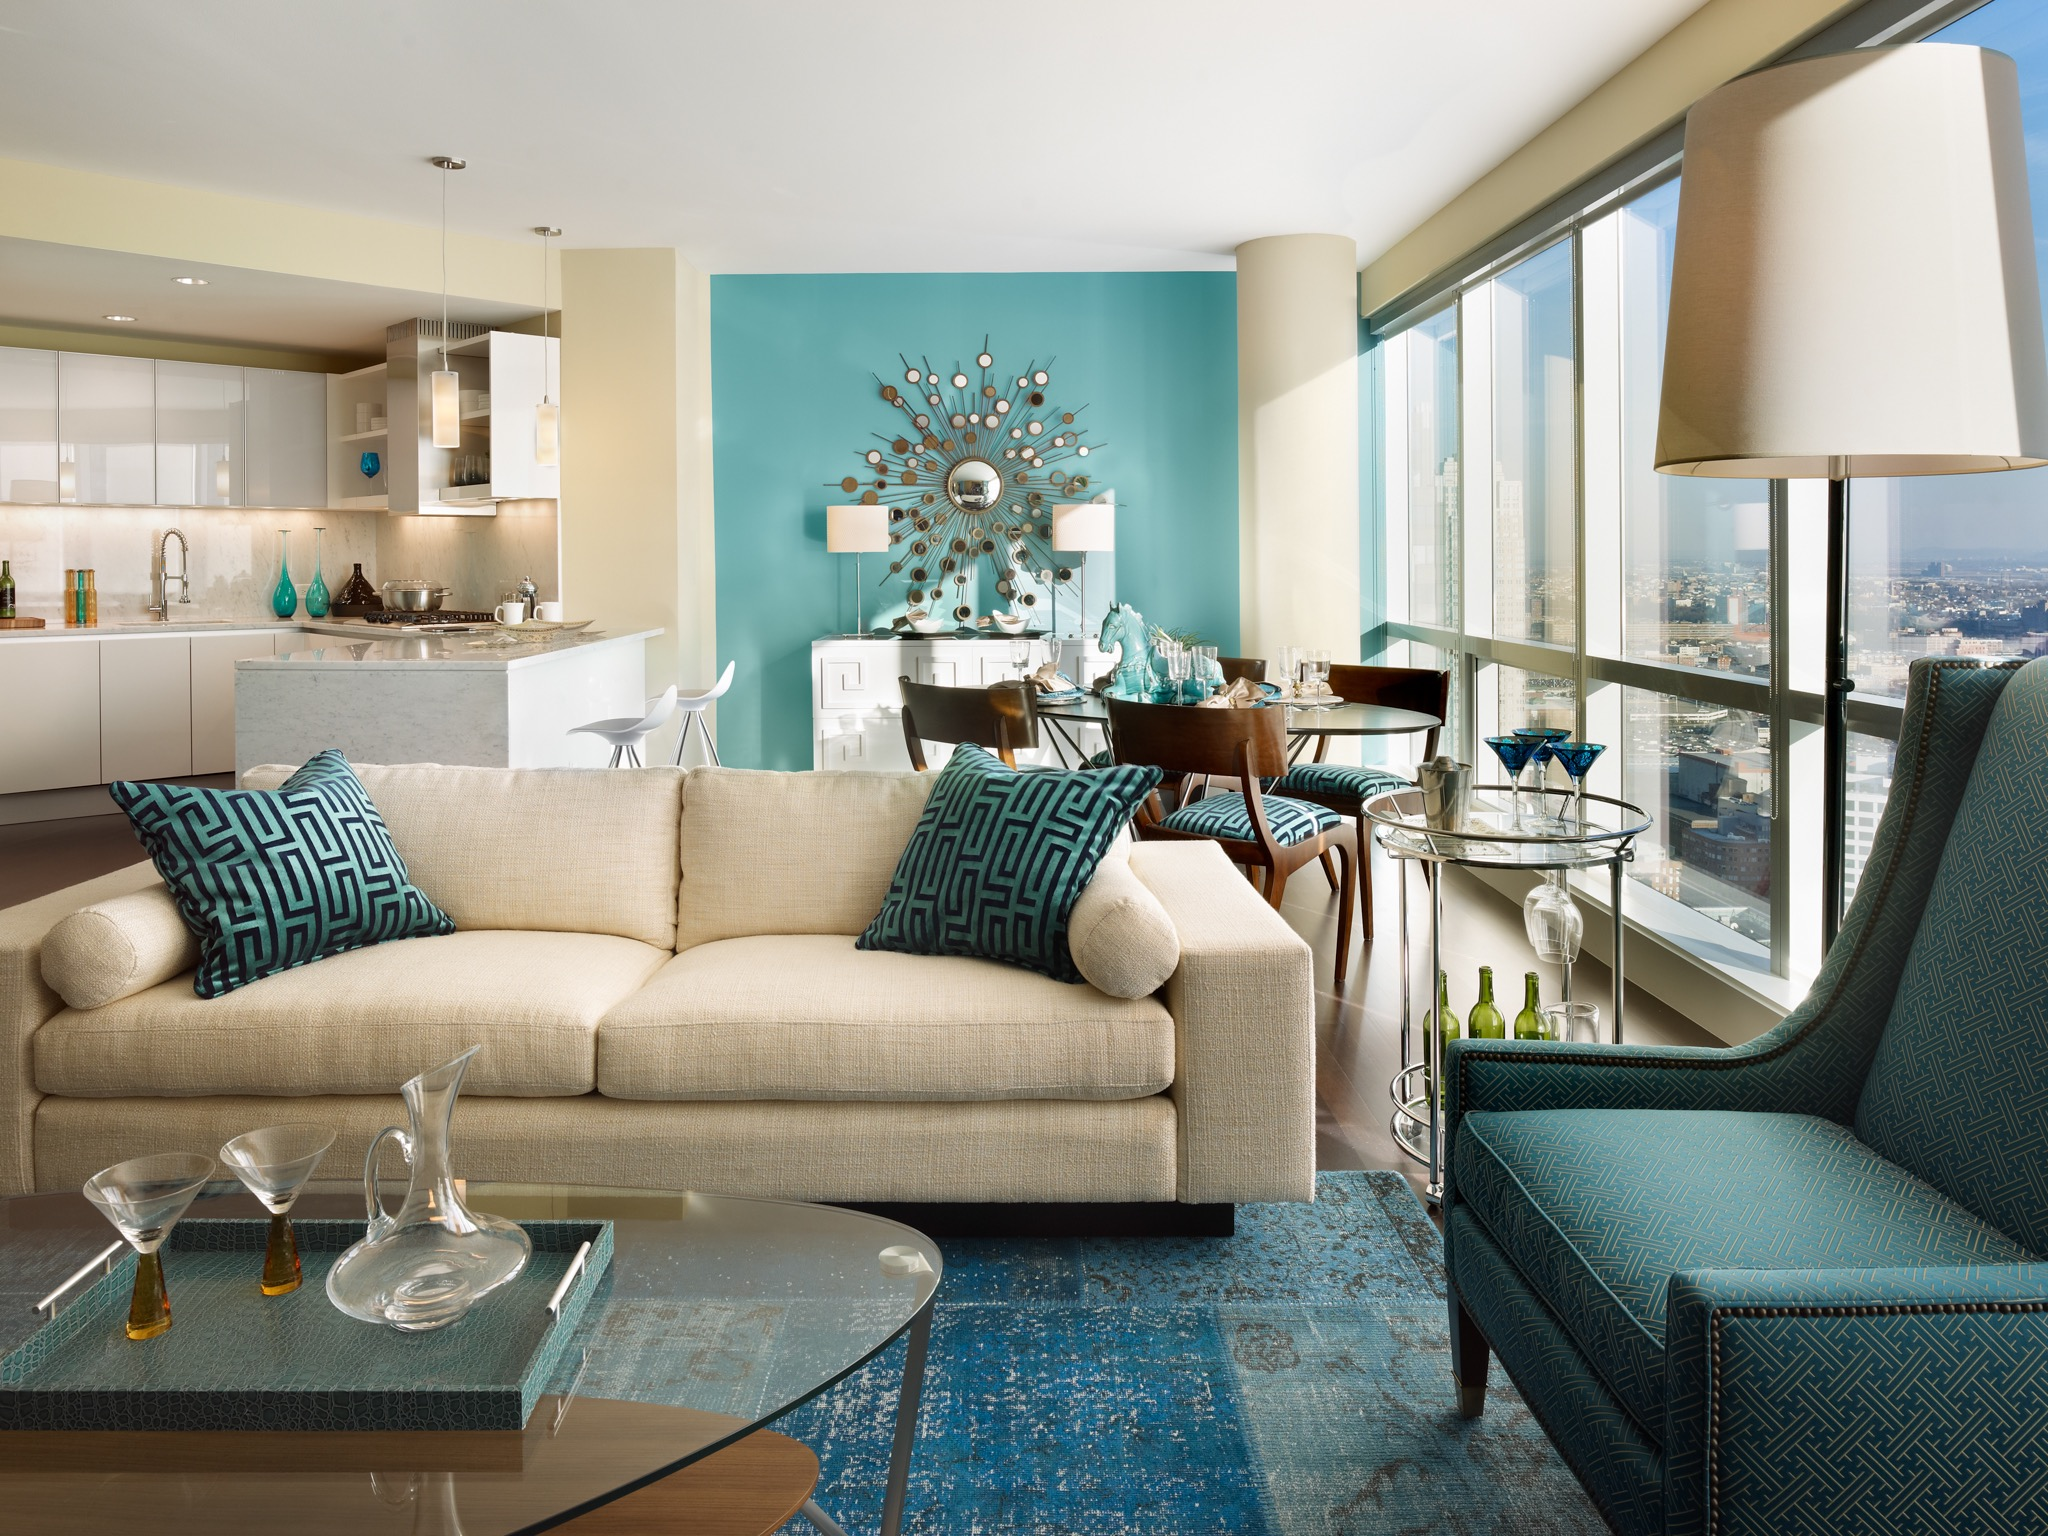 Aqua Blue Color Theme For Fresh Modern Apartment Living Room (Image 1 of 20)